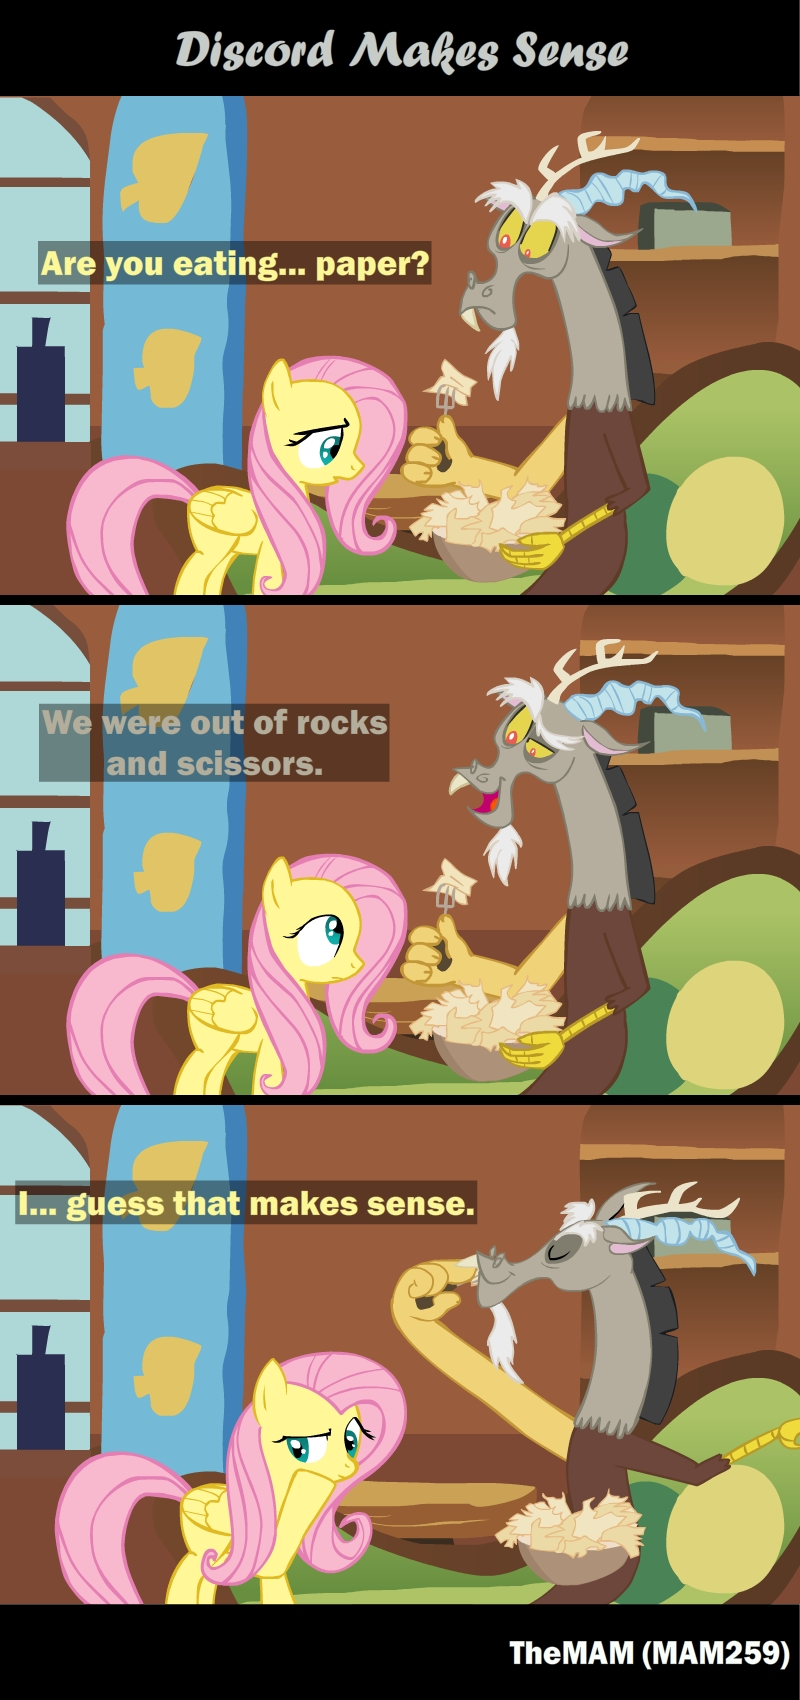 Discord Makes Sense by TheMAM